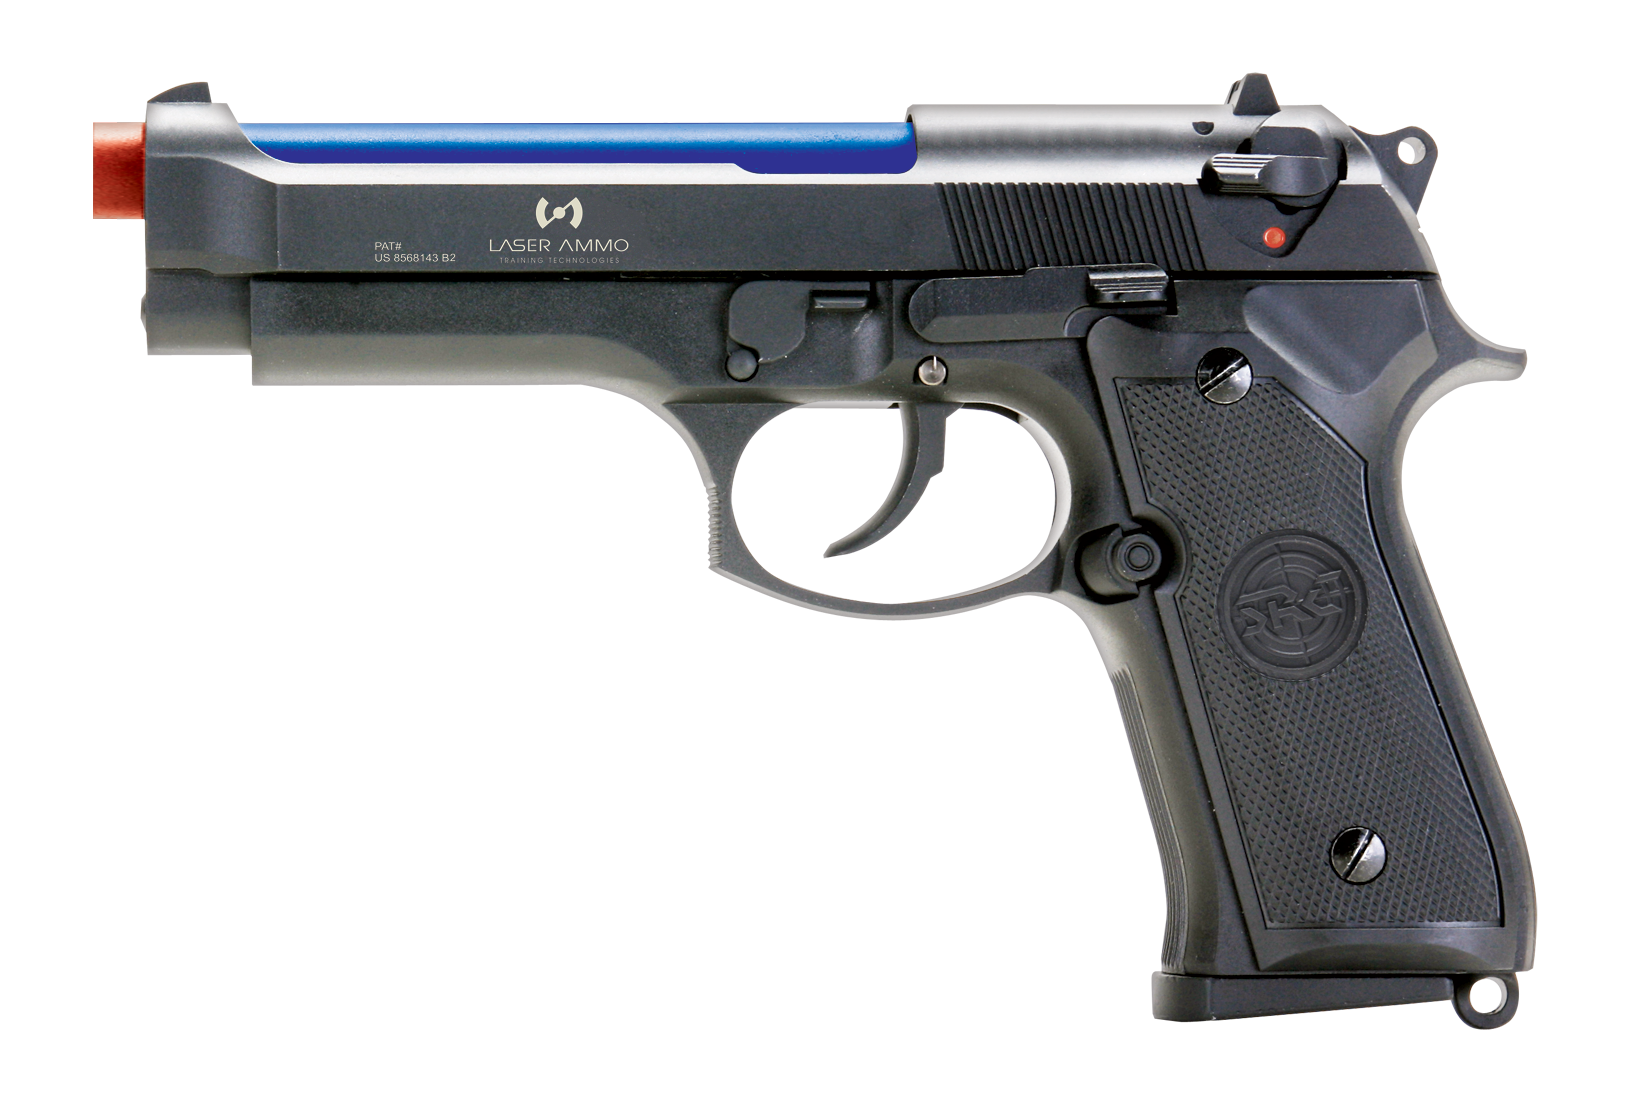 Recoil Enabled Training Pistol- Laser Ammo M9- CO2